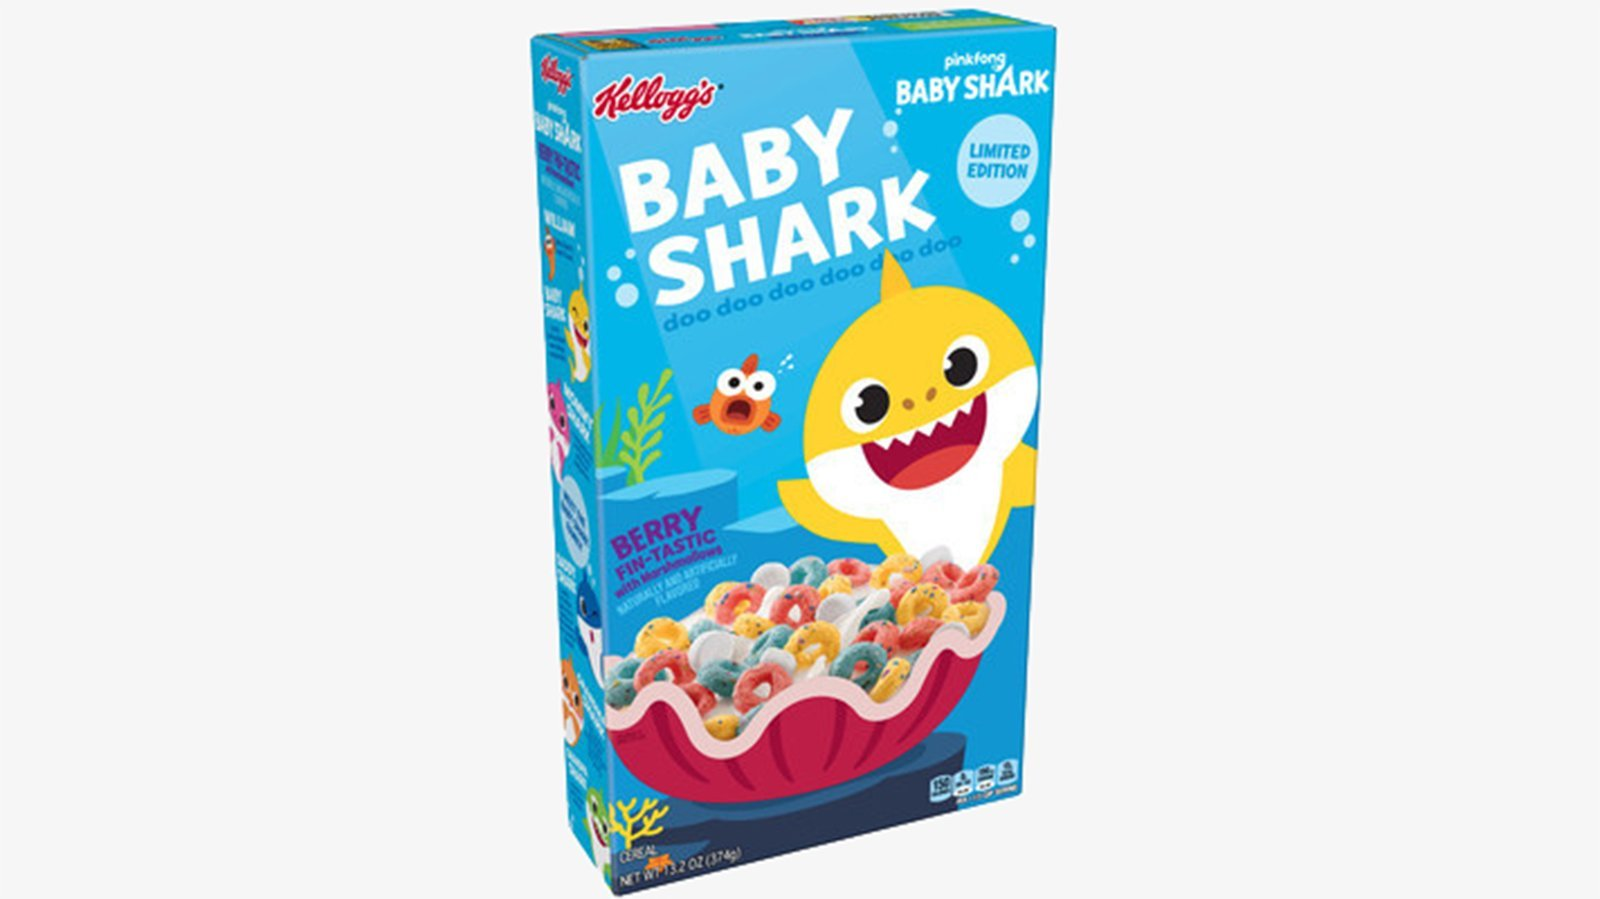 """Baby Shark"" will soon be swimming in bowls of milk as kids sing along to the popular song's ""doo doo doo doo doo doo."" (Credit: Kellogg's via CNN)"